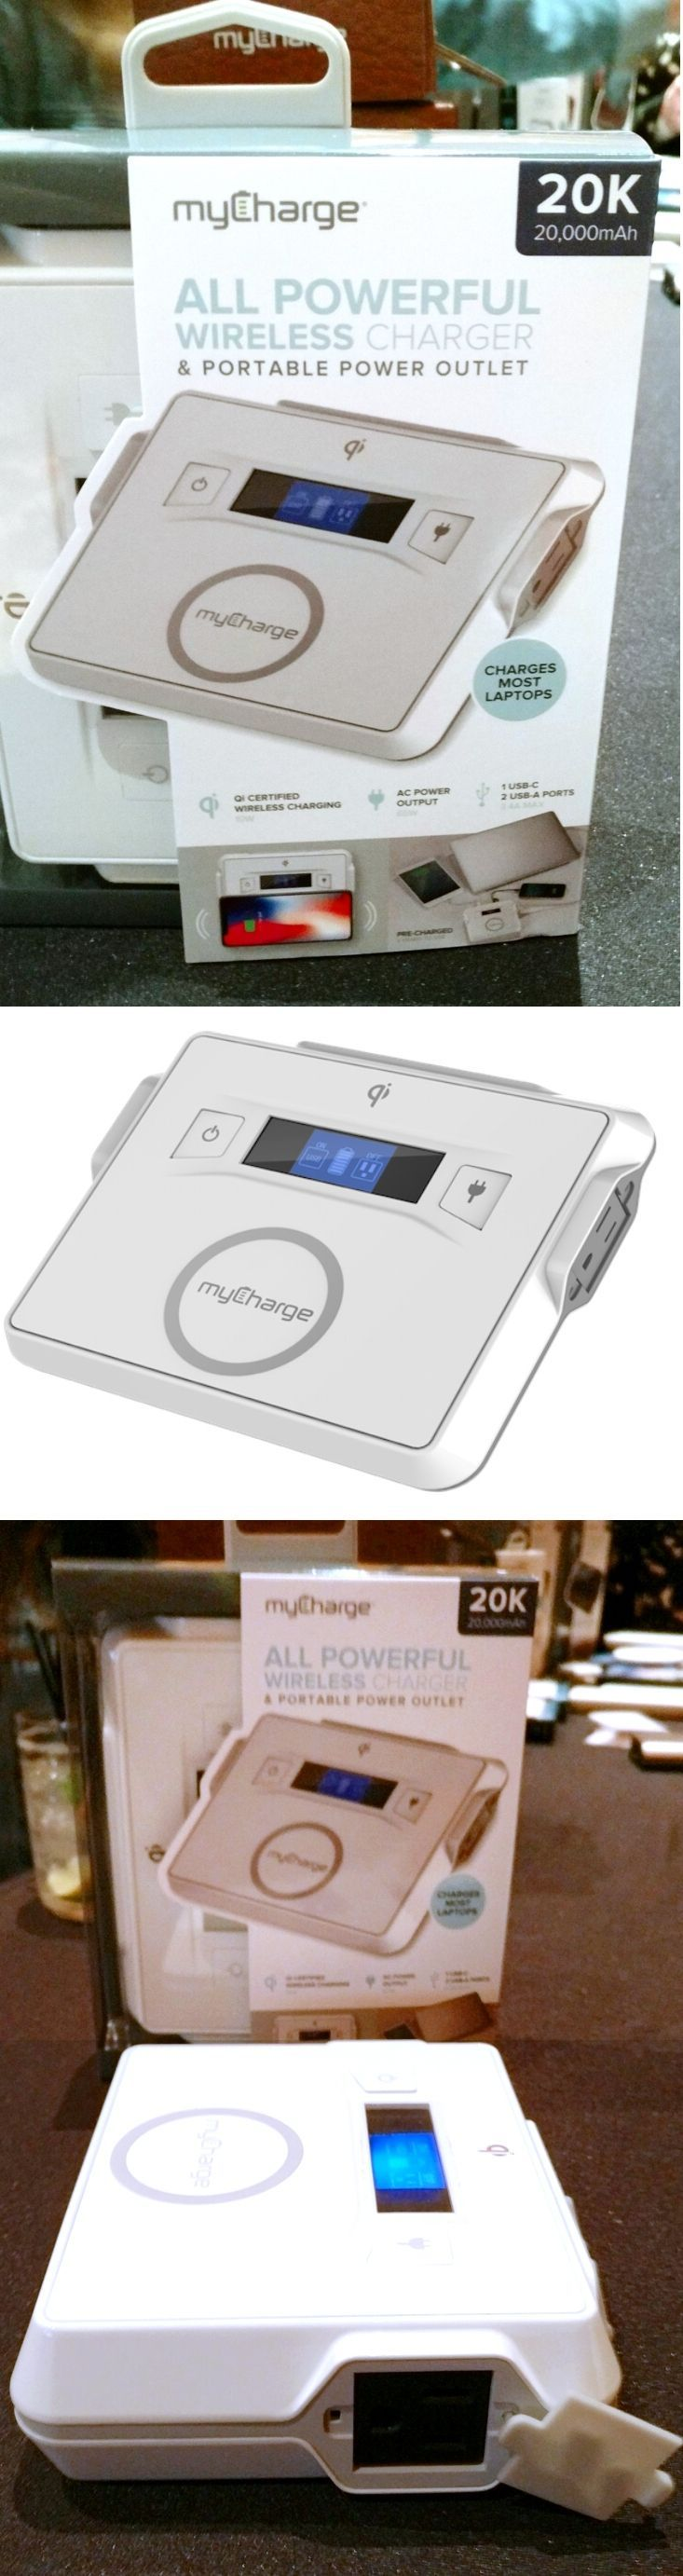 The new MyCharge All Powerful Wireless Charger covers all bases when it comes to reviving power-starved devices. In addition to its 20,000 mAh battery, two USB ports and single USB-C port, the $200 unit has a 65-watt AC outlet—enough to power a laptop or